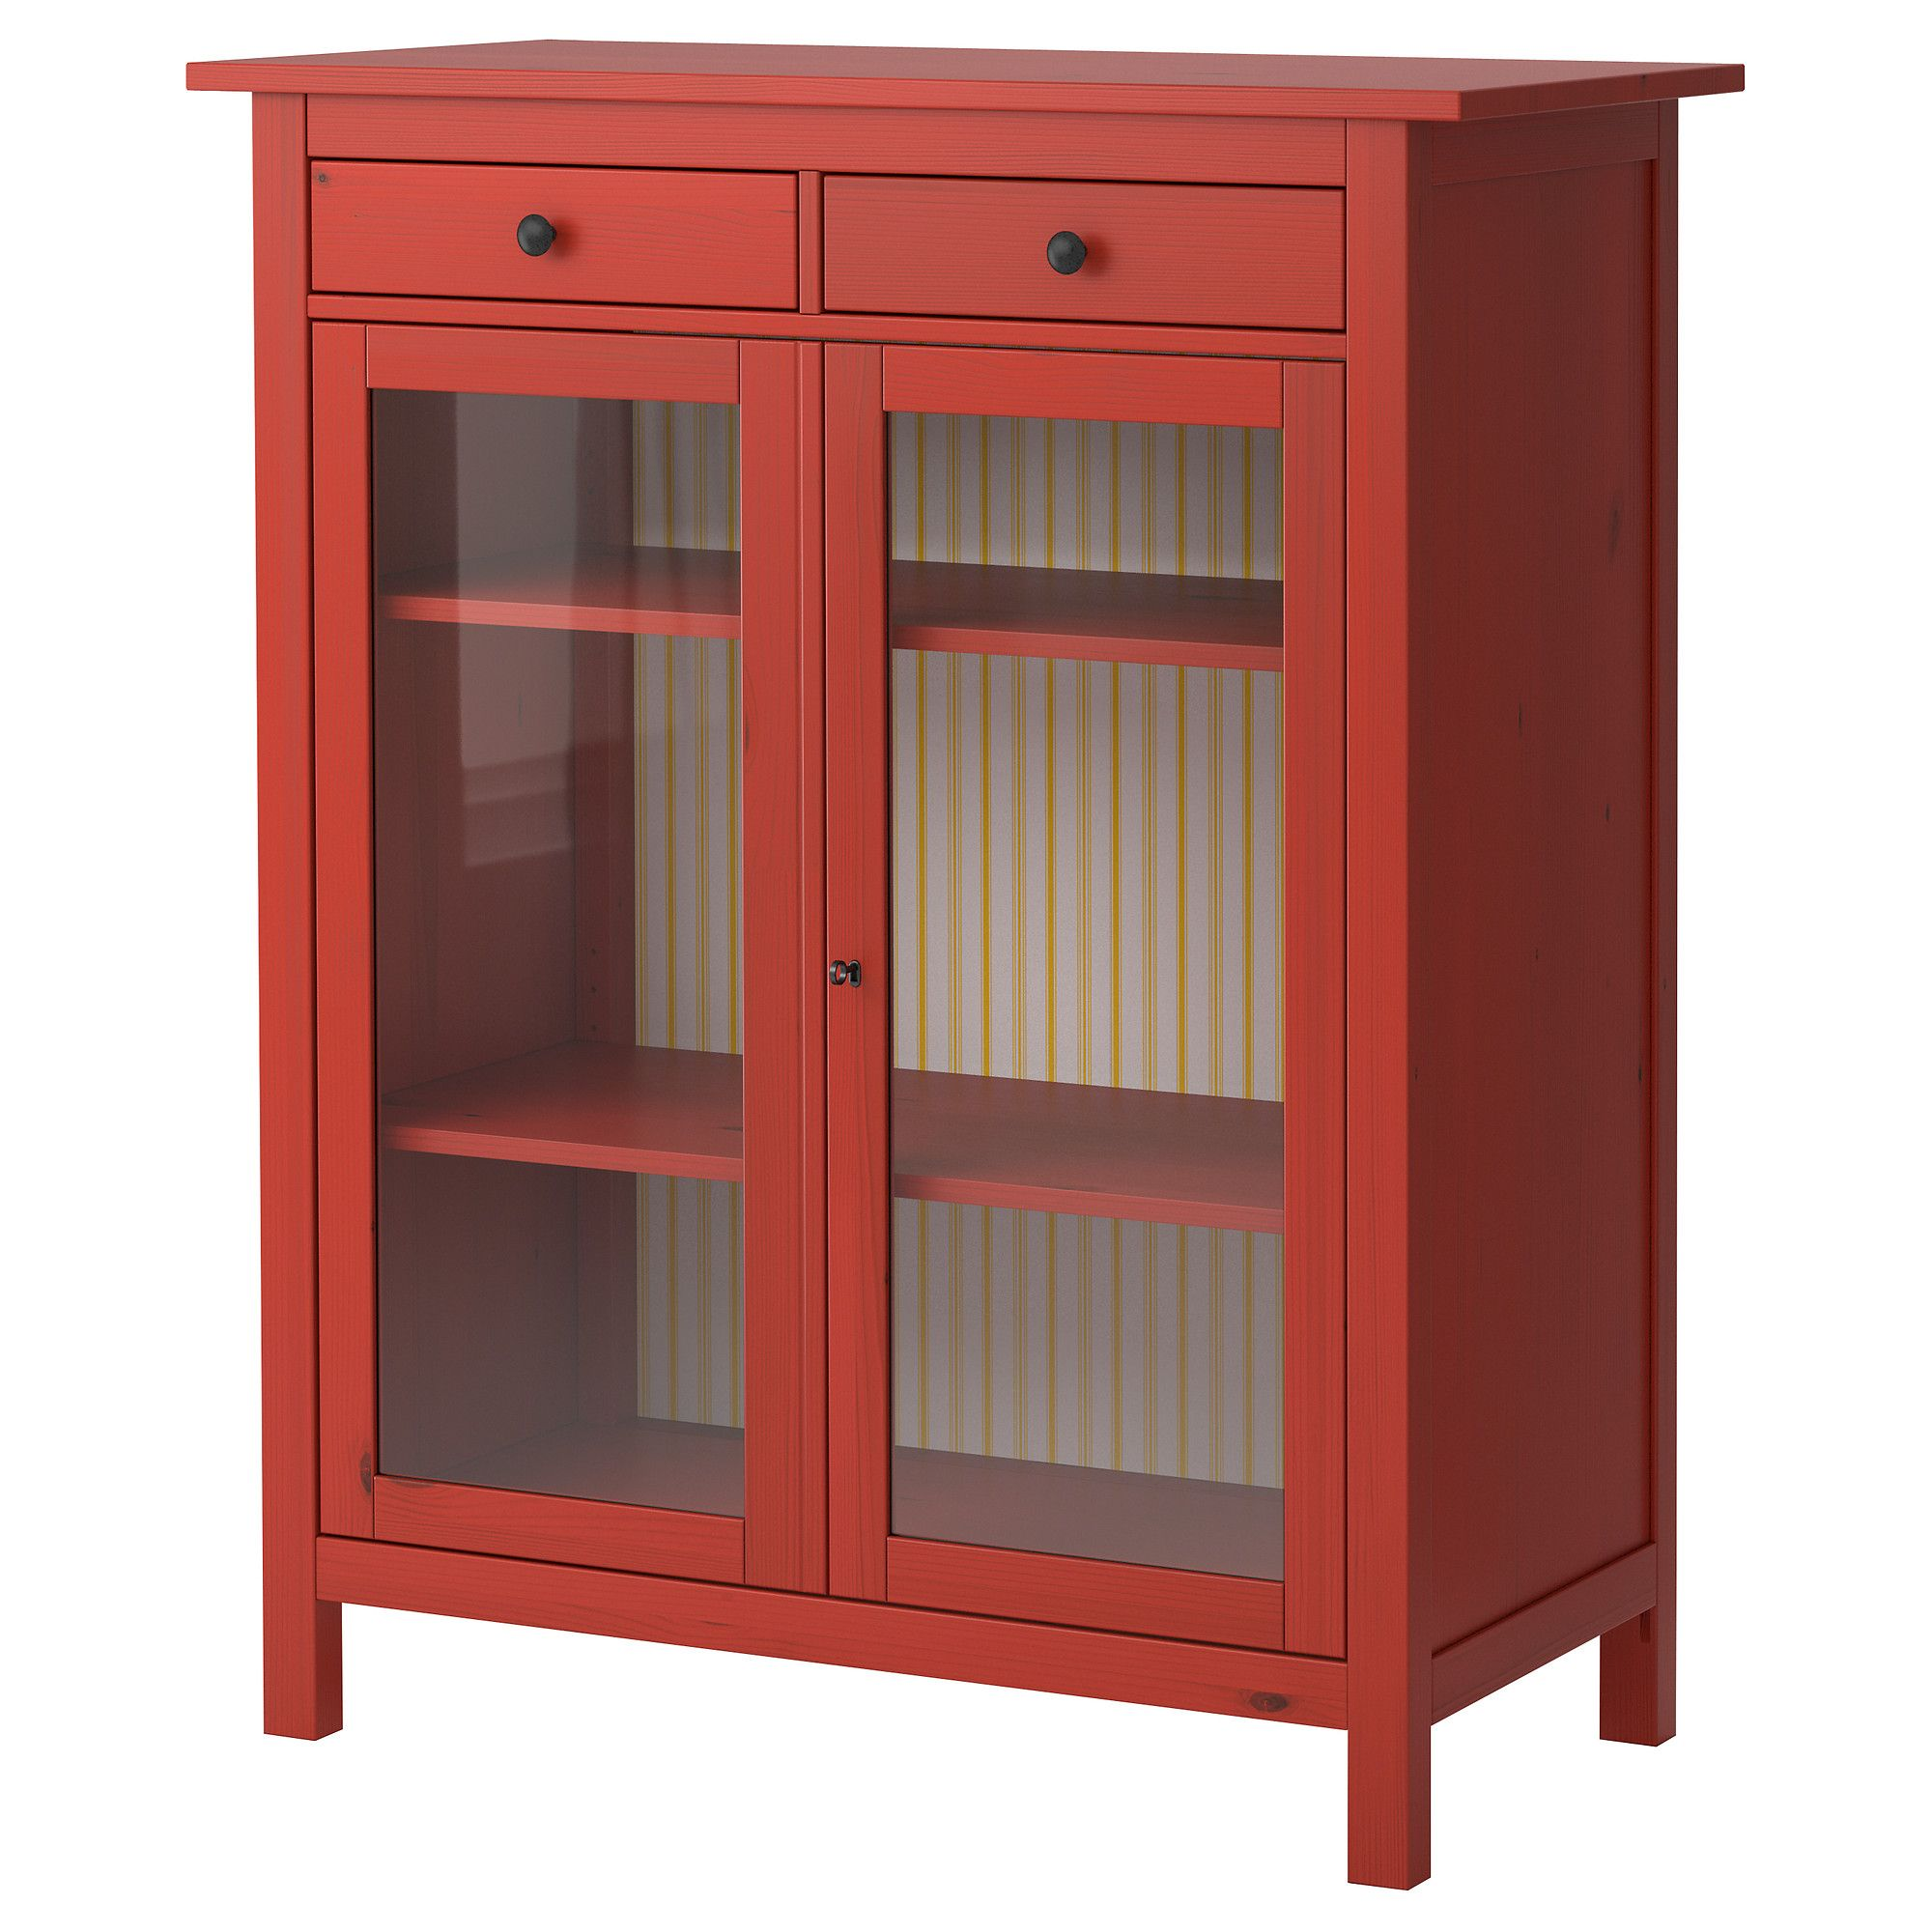 case door cabinets glass cabinet of china size display sektion full units corner godmorgon kitchen ikea klingsbo glassdoor medicine detolf mirror red wall lighting